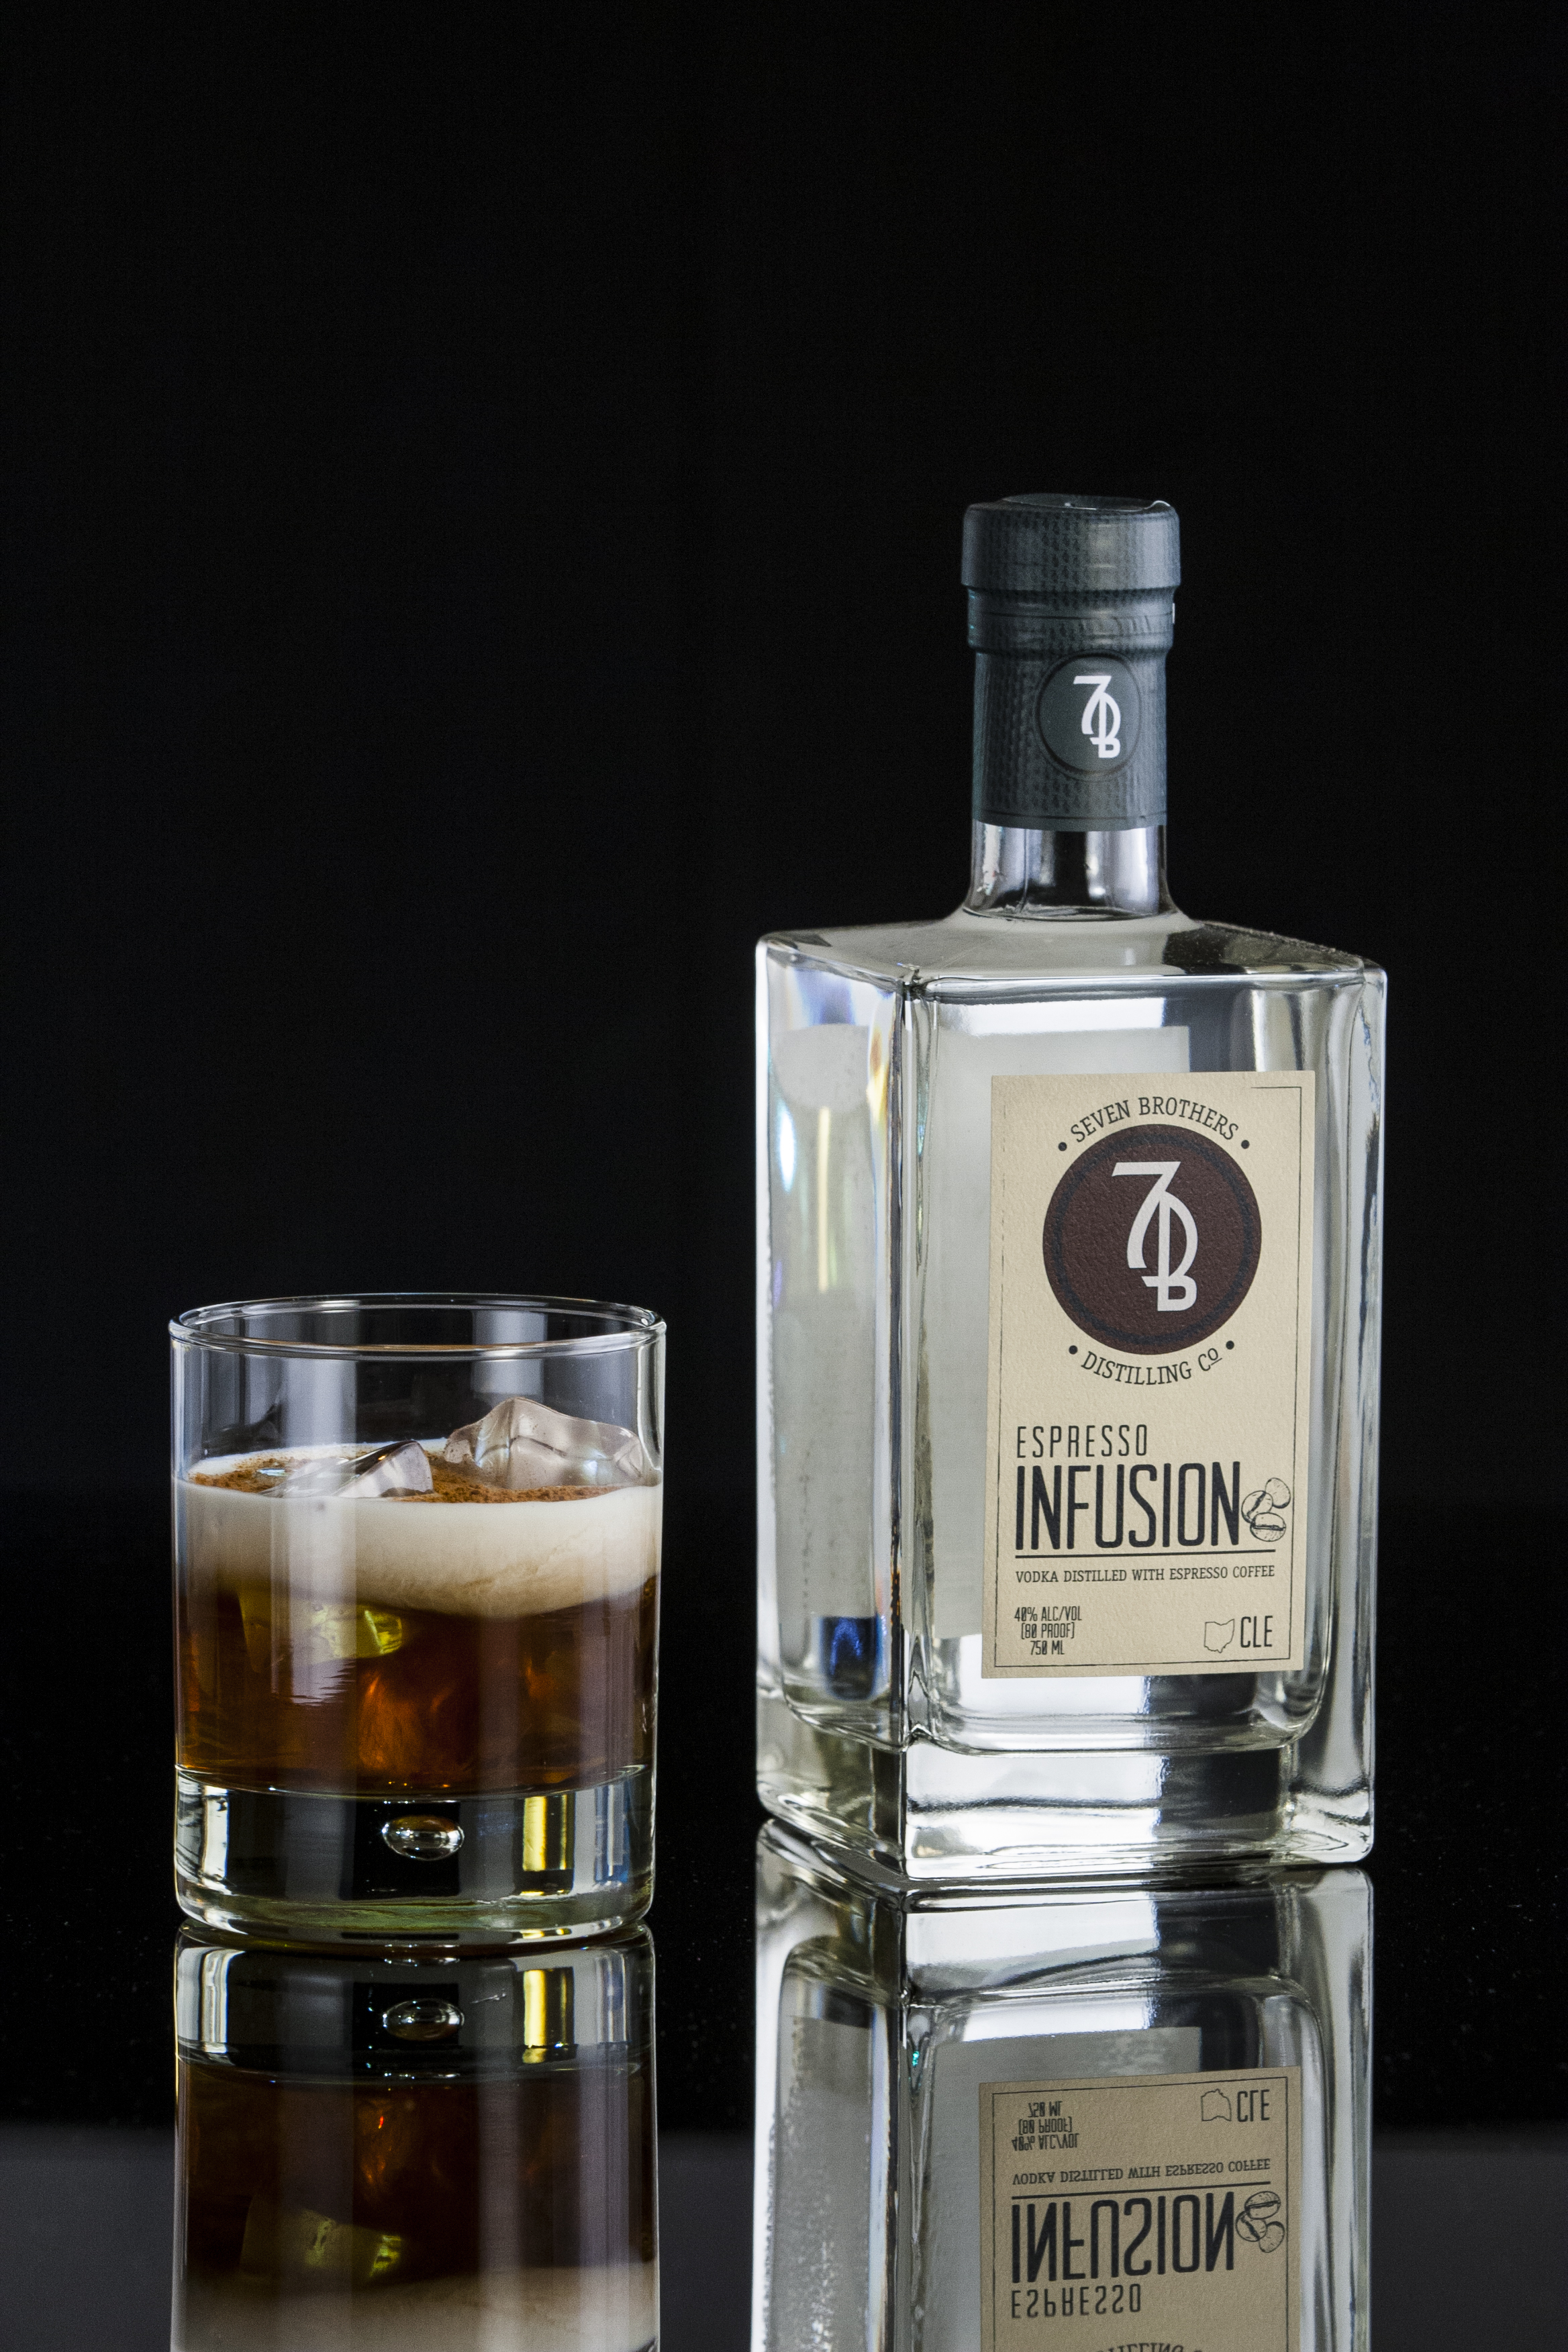 WHITE RUSSIAN - 2 oz Seven Brothers Espresso Infusion1 oz Coffee Liqueur (Kahlua)Splash of Heavy CreamCombine vodka and coffee liqueur and stir briefly over ice into a Rocks glass. Top with heavy cream and grated cinnamon.